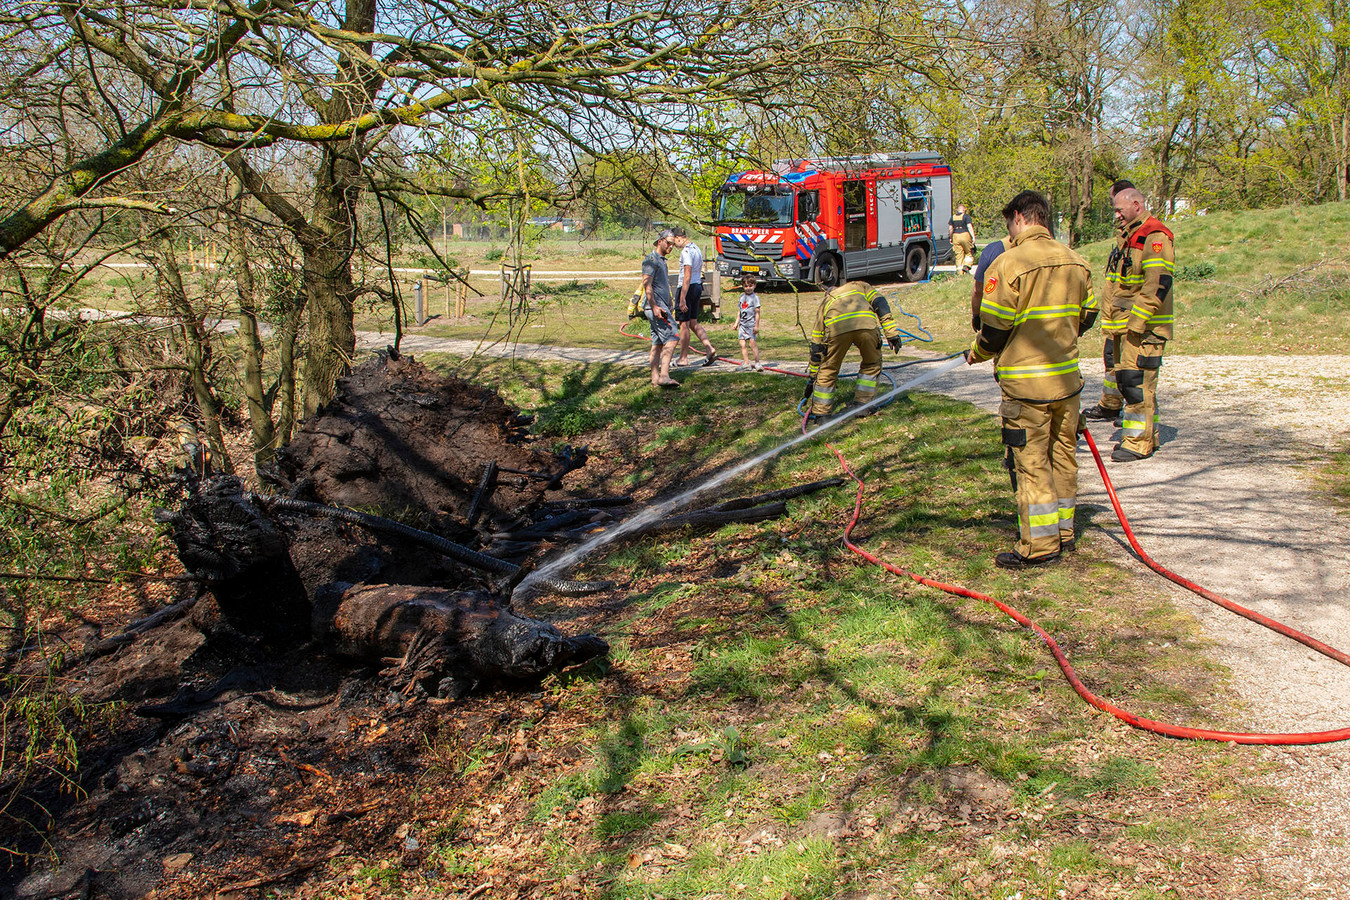 Boomstronk in brand in natuurgebied Oss